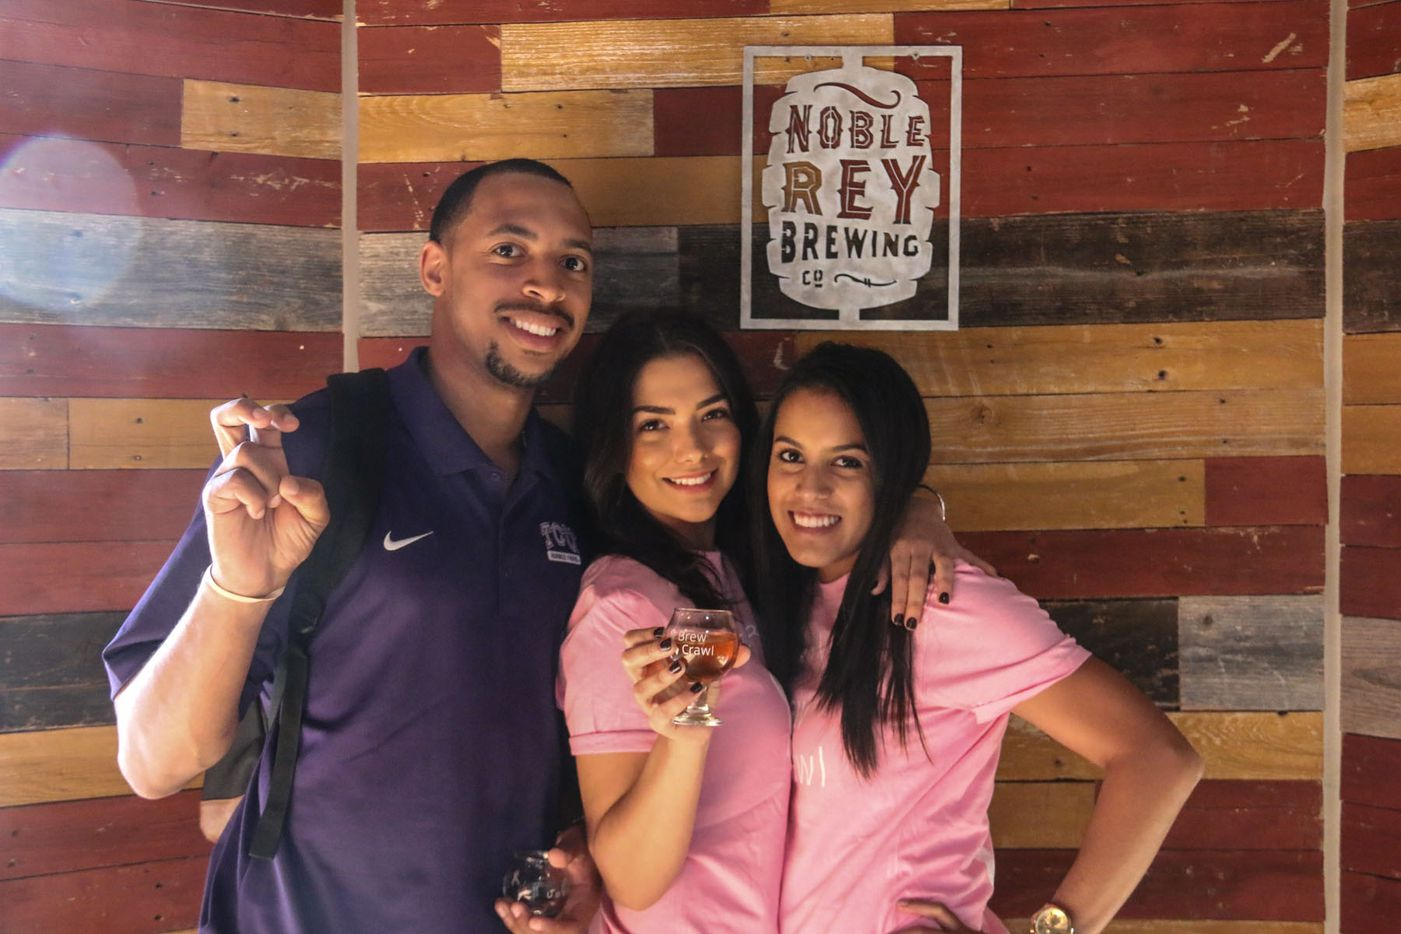 Noble Rey Brewing Co. was one of the stops during the inaugural Brew Crawl for Breast Cancer on Saturday in Dallas.